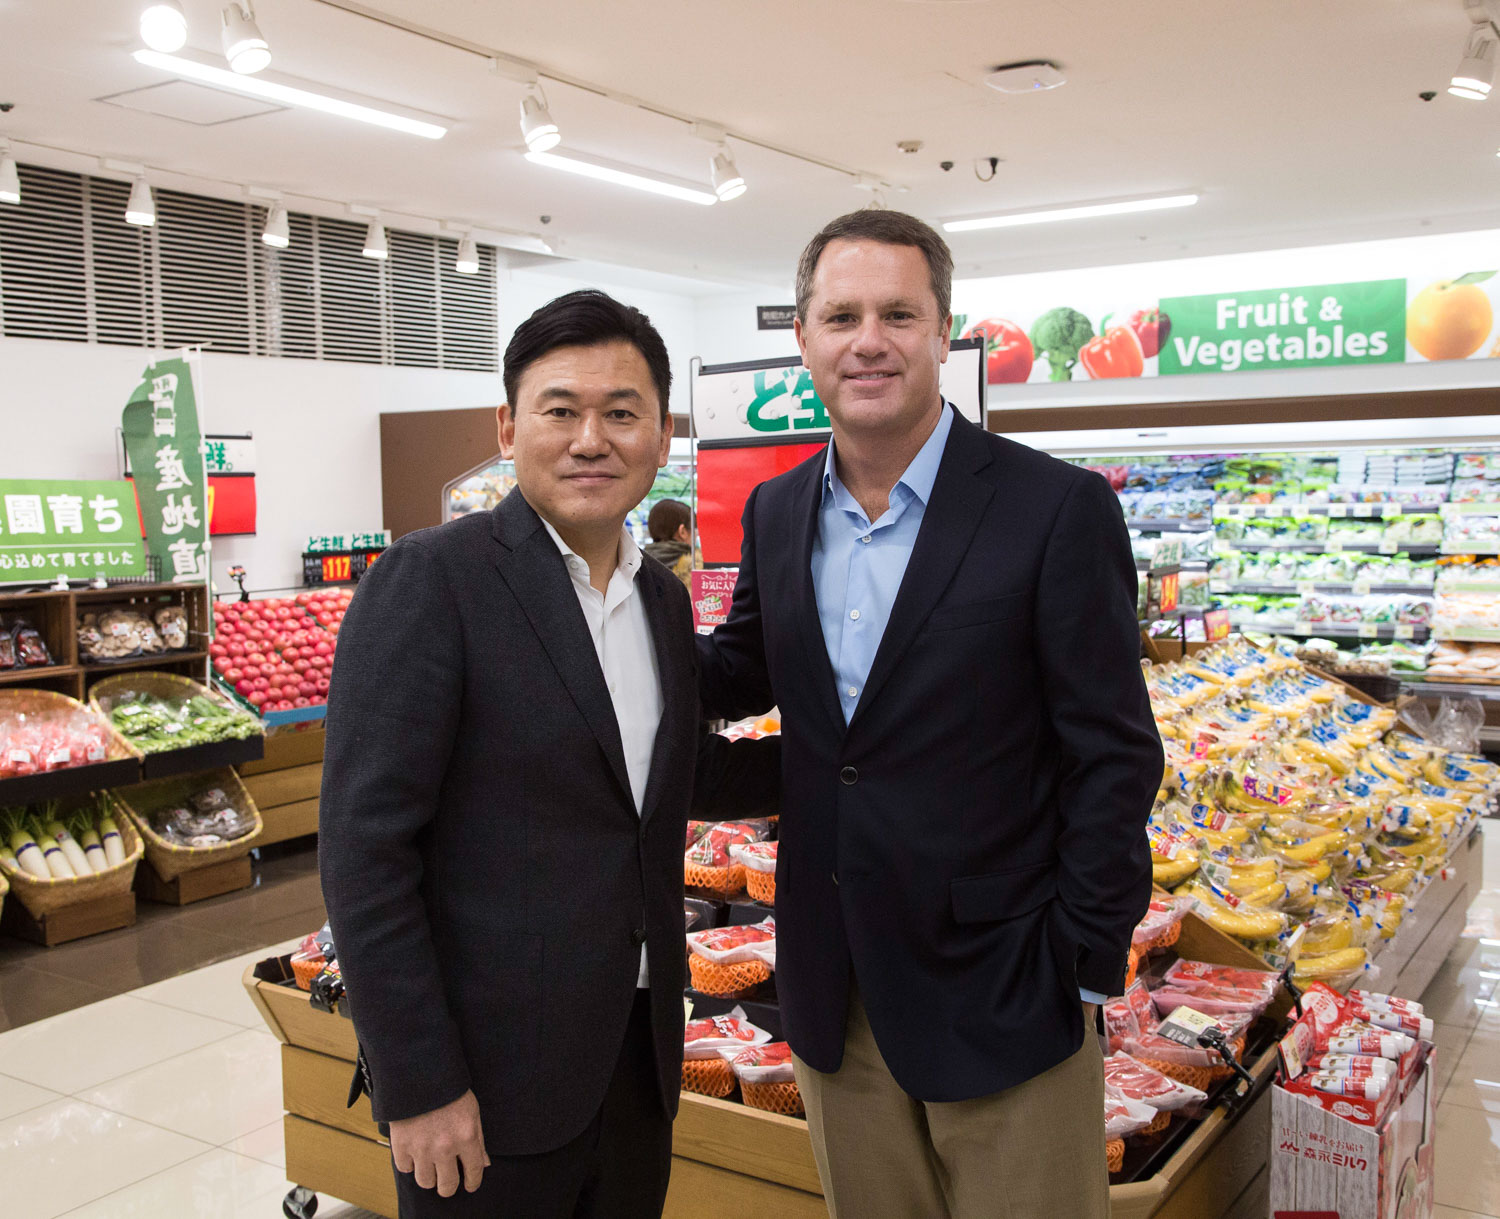 Rakuten and Walmart align to make a difference in online grocery delivery and eReading space